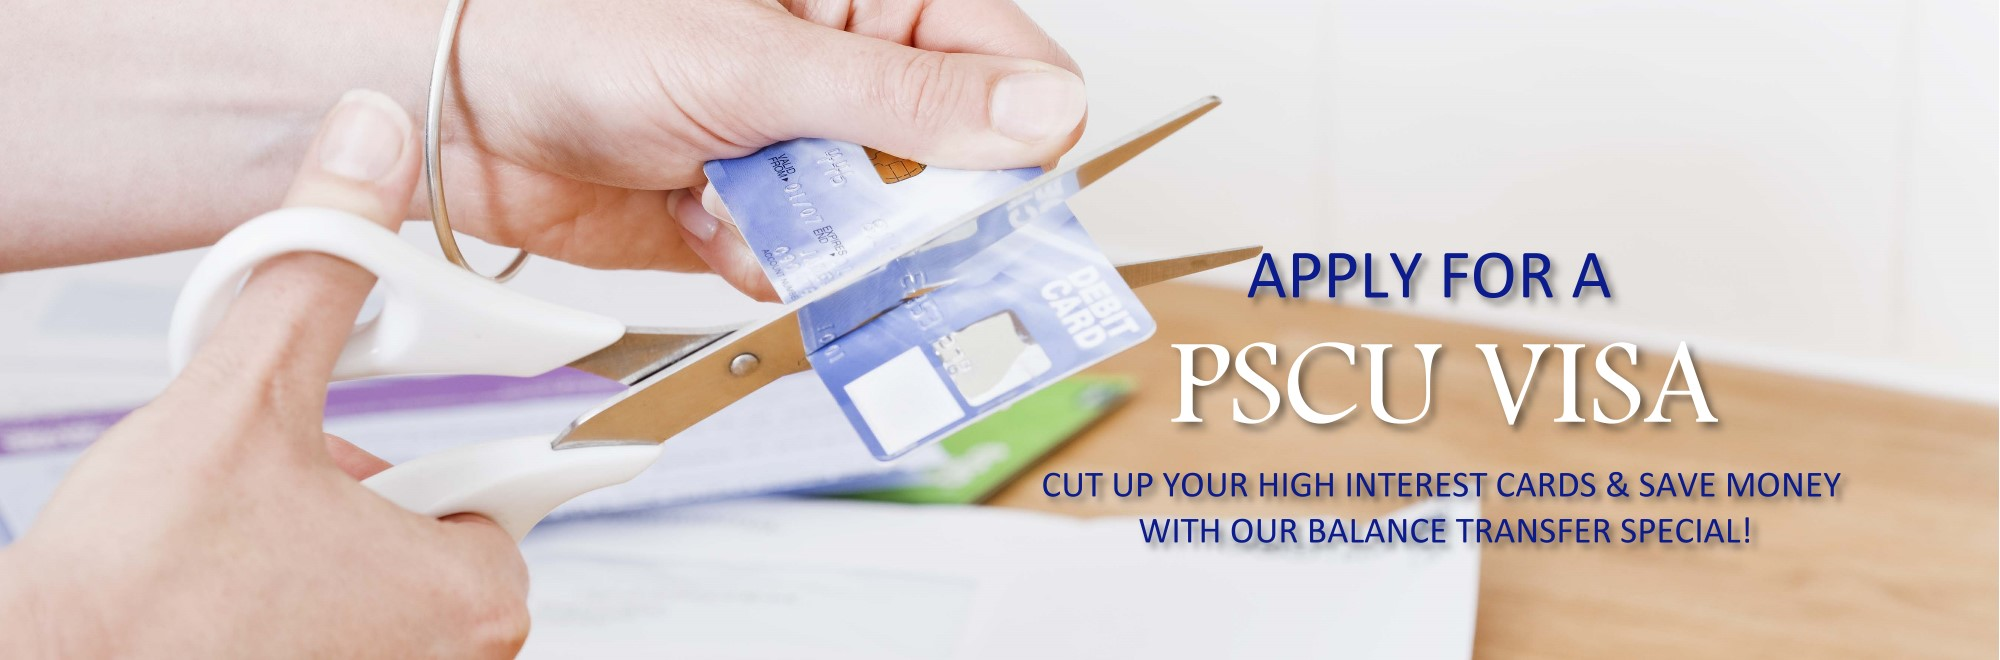 Apply for a PSCU VISA banner image